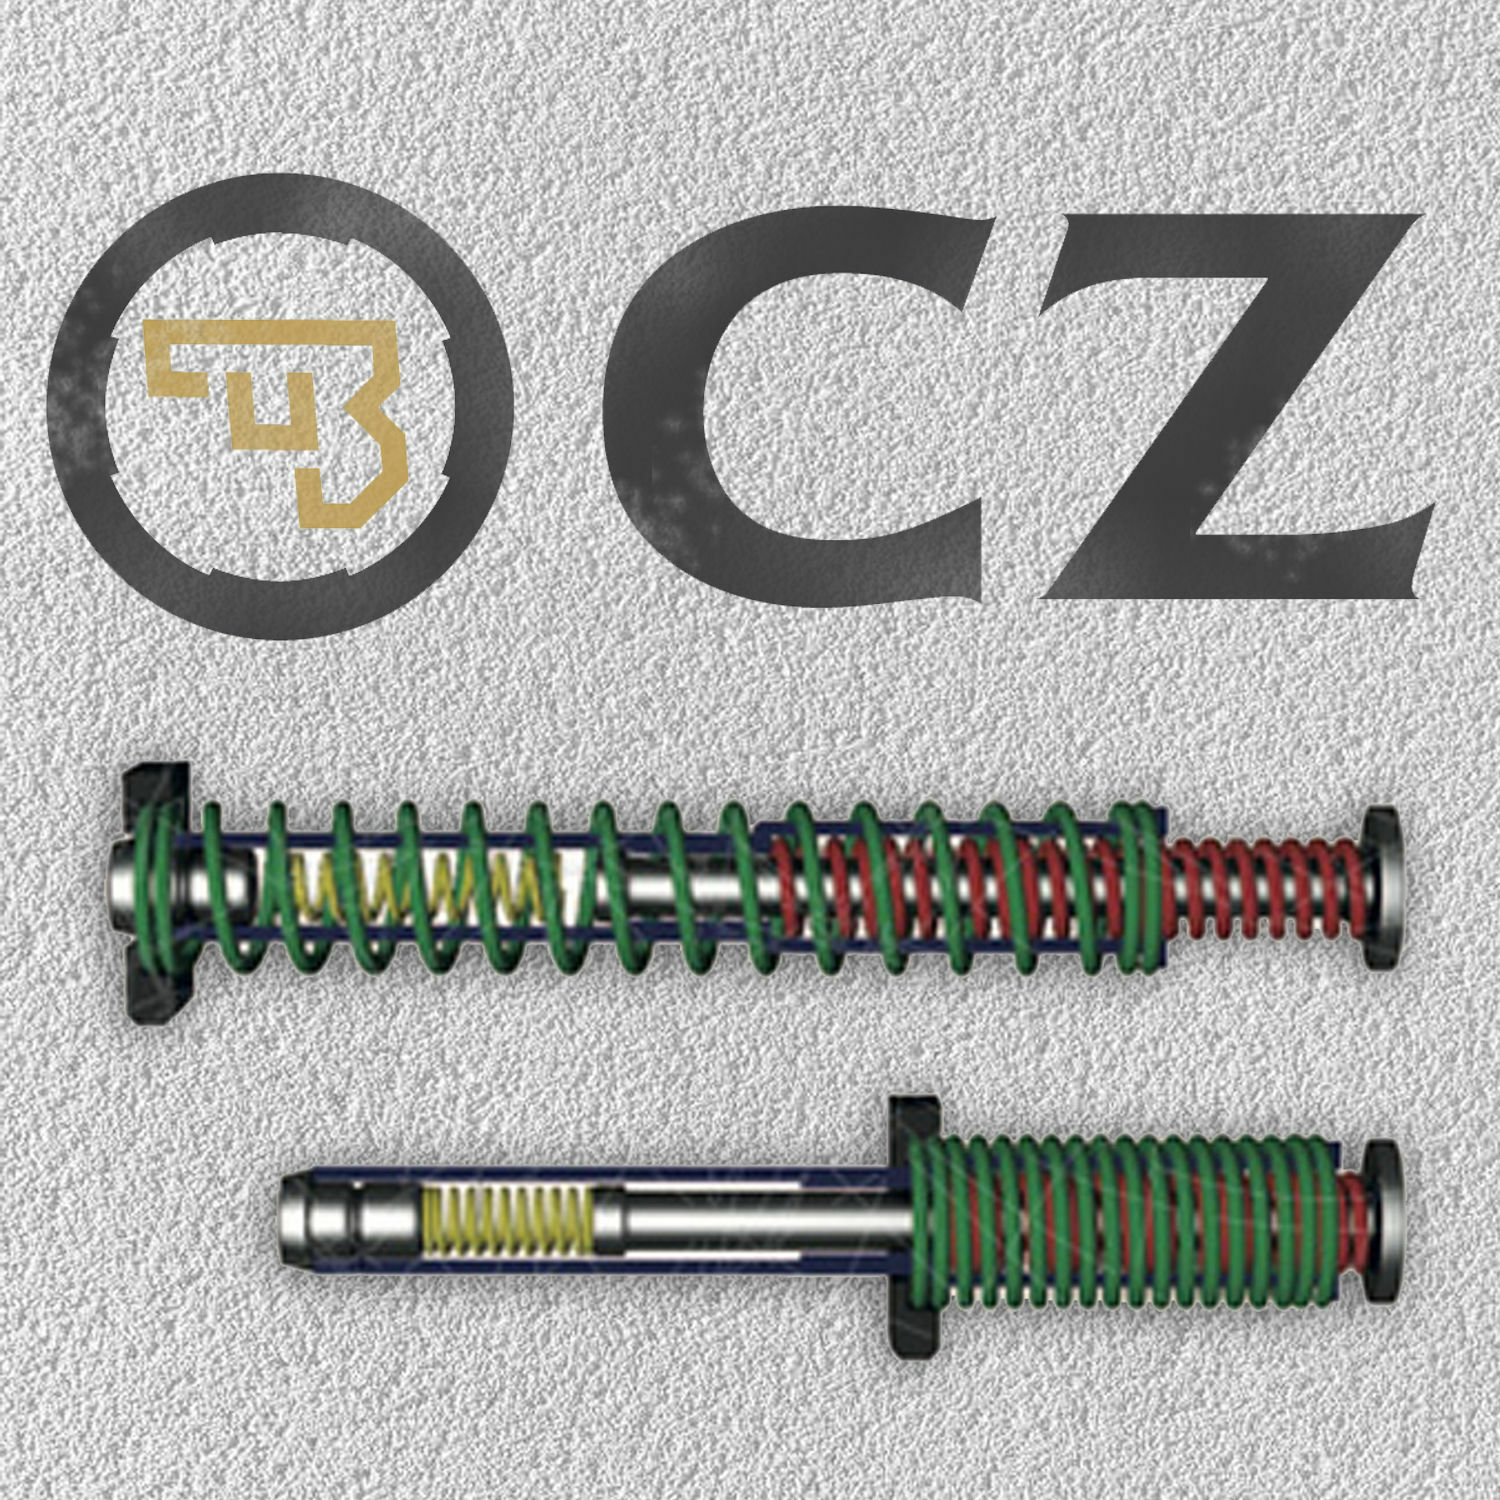 Dpm Recoil ROTuction Spring For ALL CZ Models